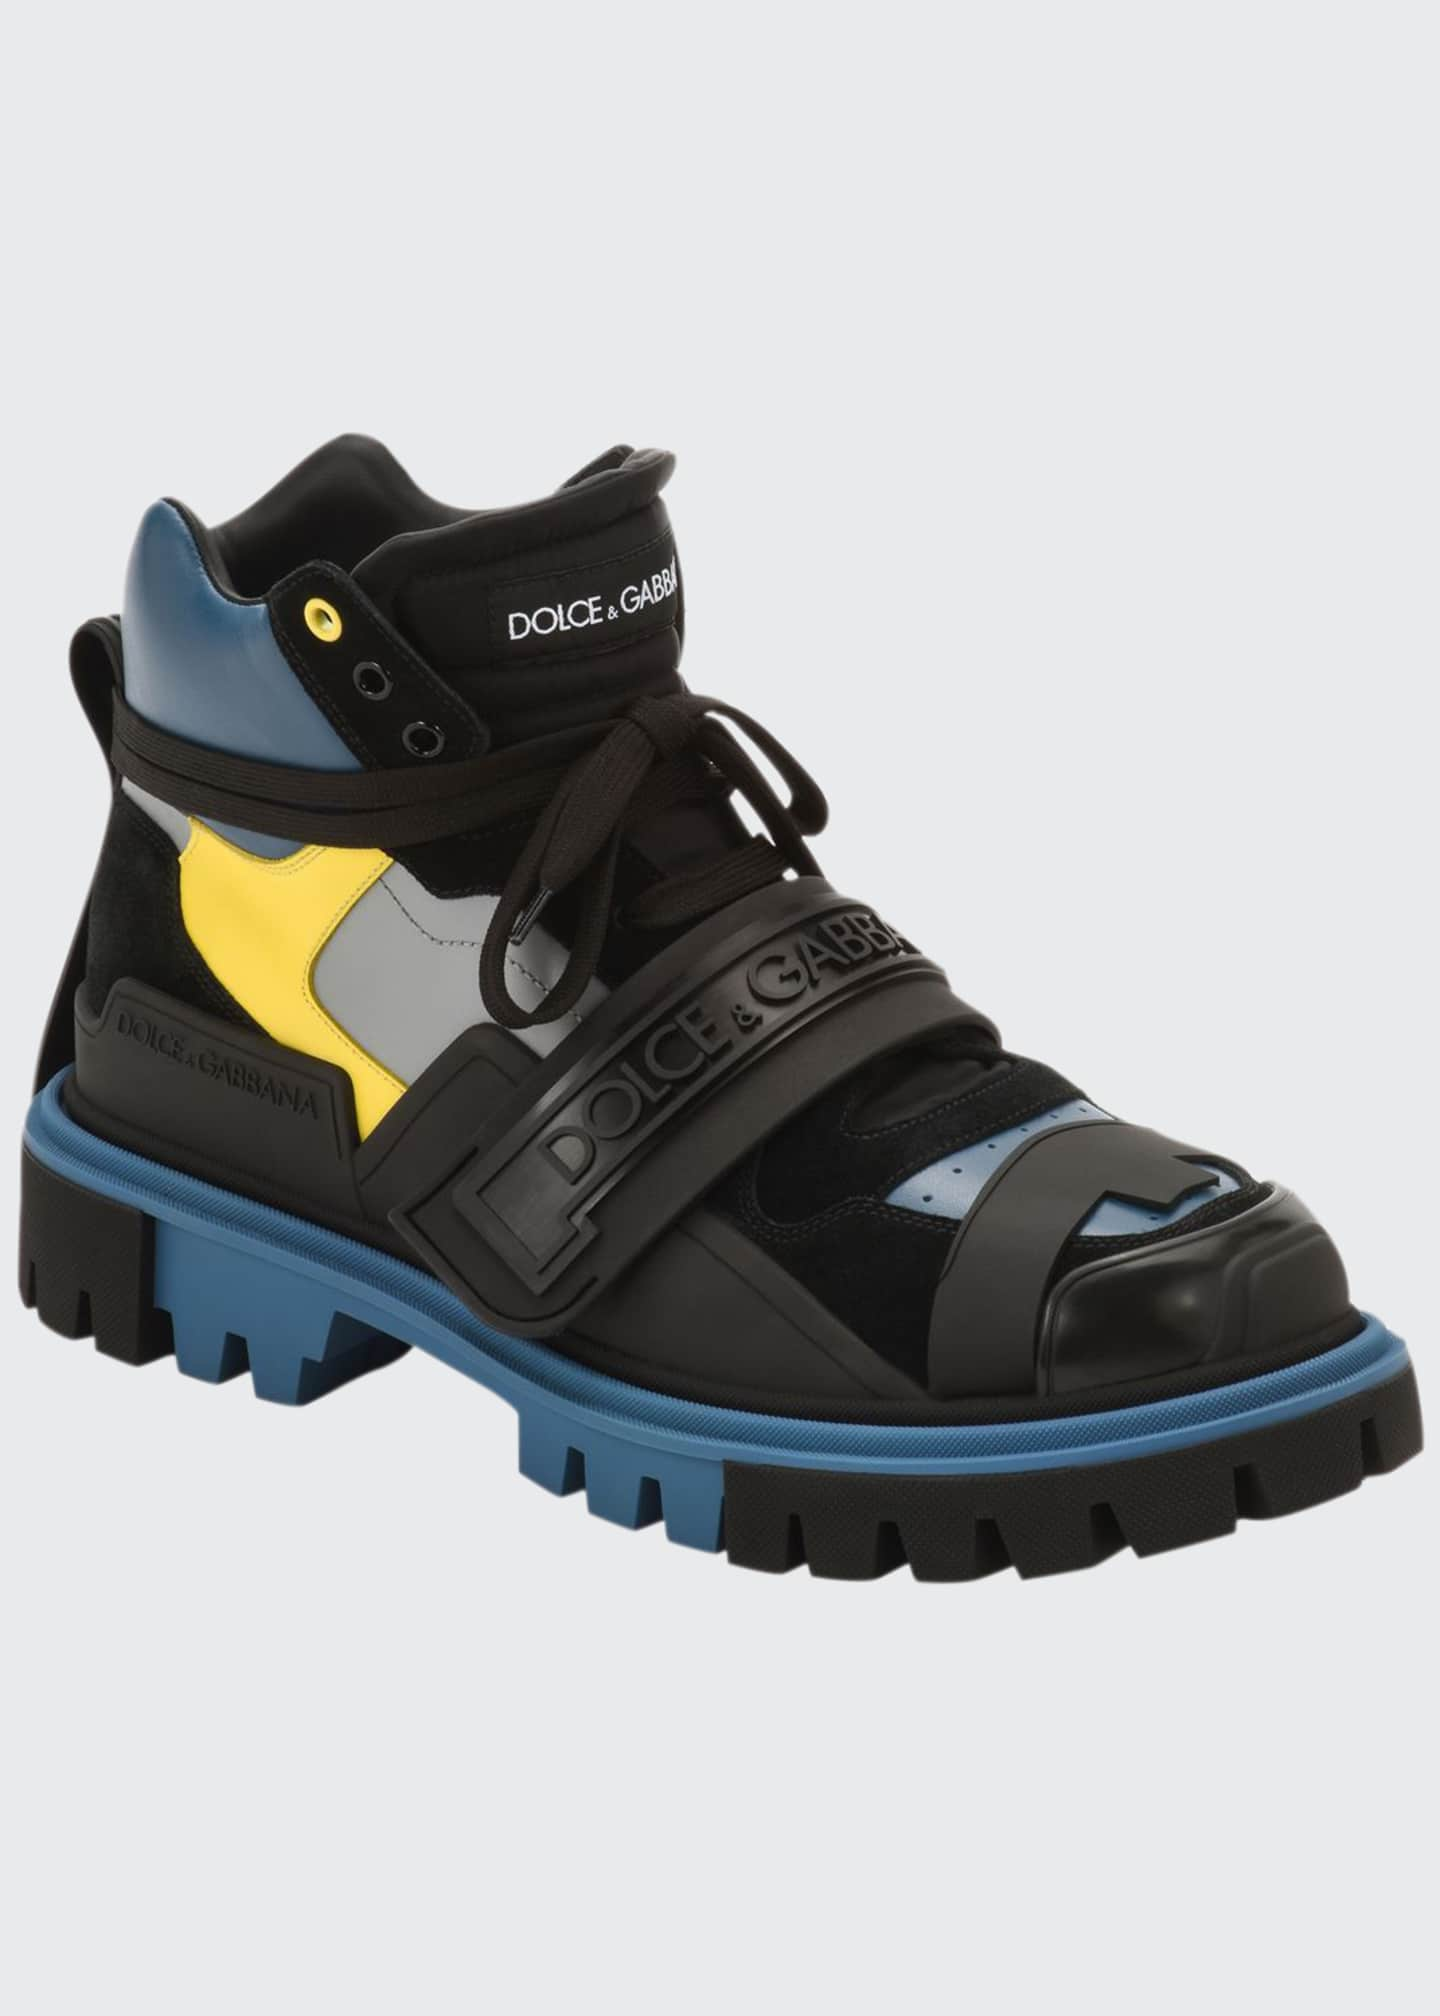 Dolce & Gabbana Men's Colorblock Leather Hiking Boots